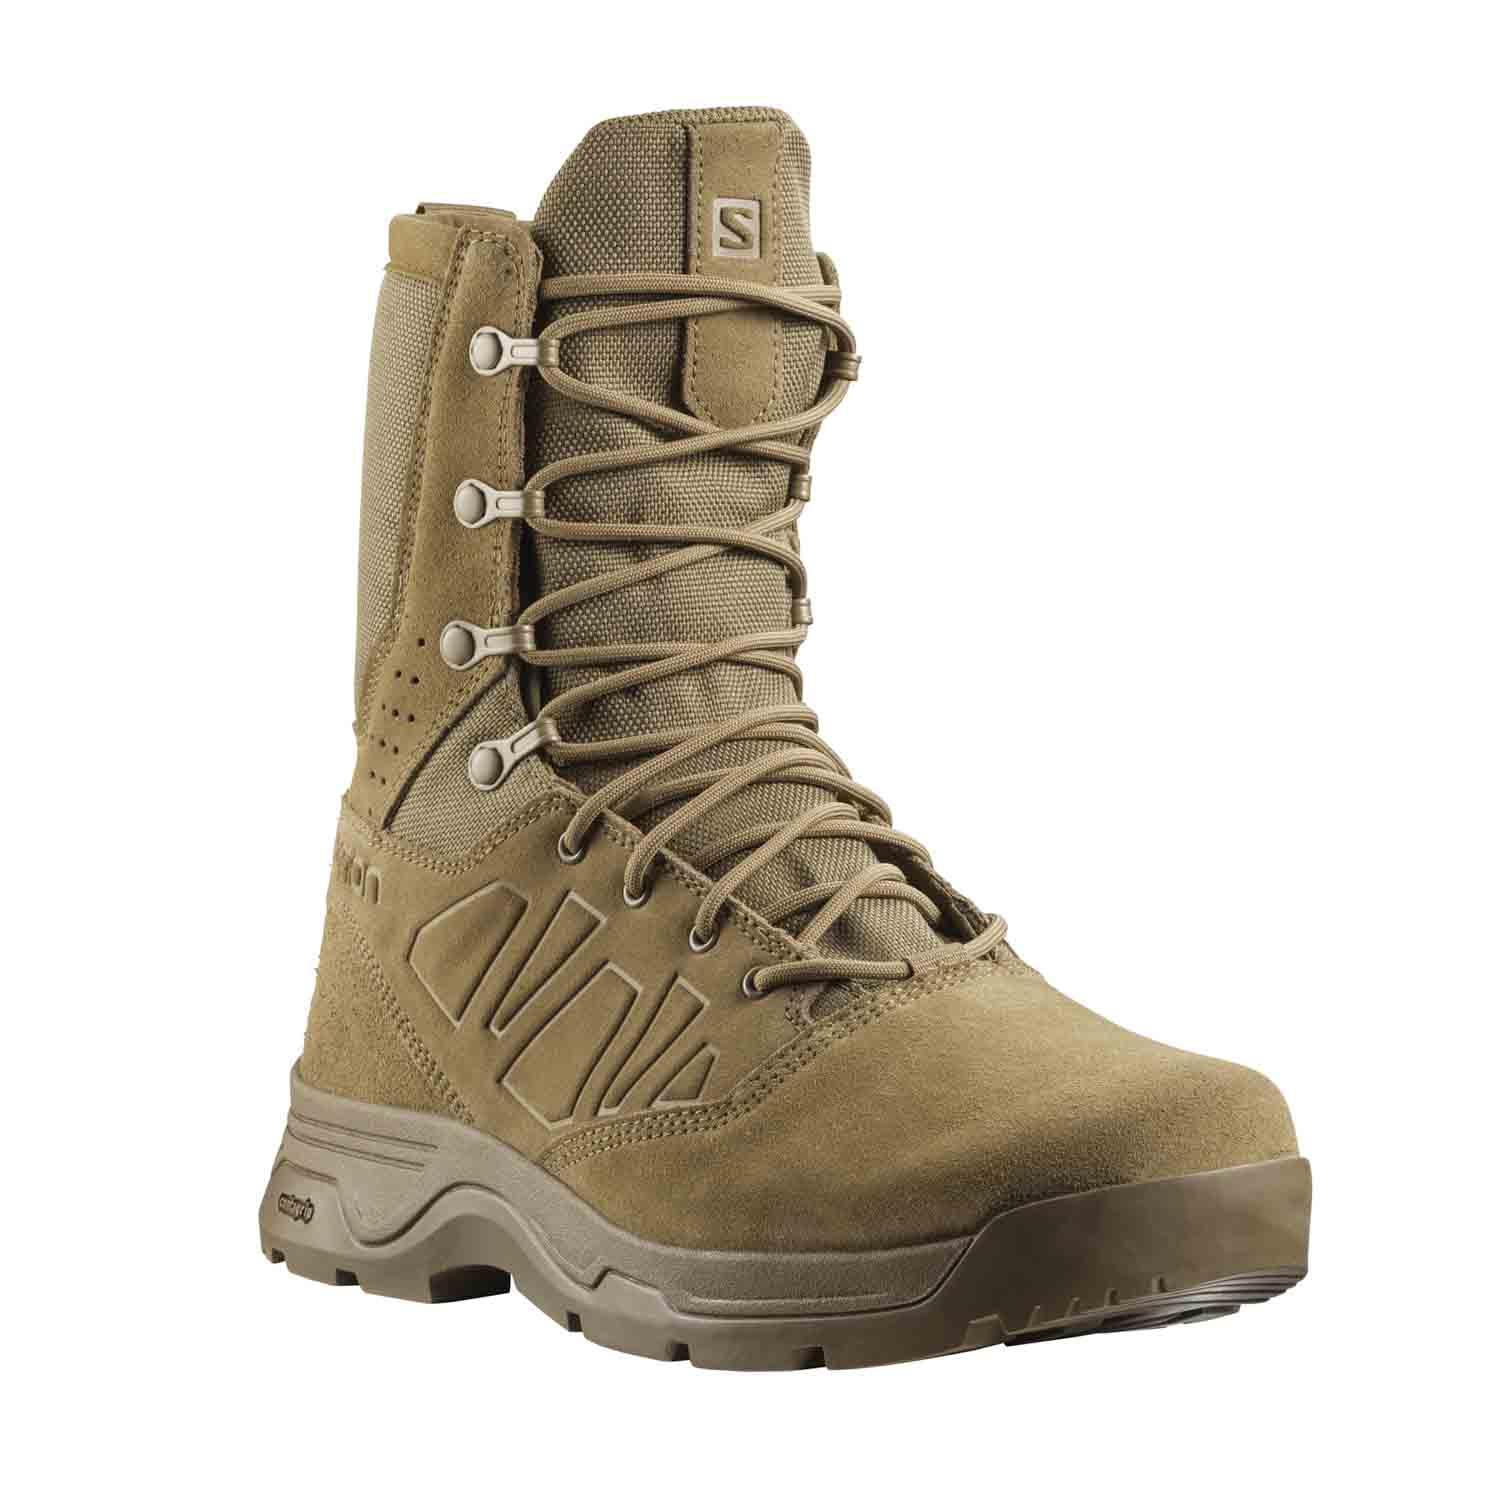 Salomon Guardian CSWP Waterproof Duty Boot